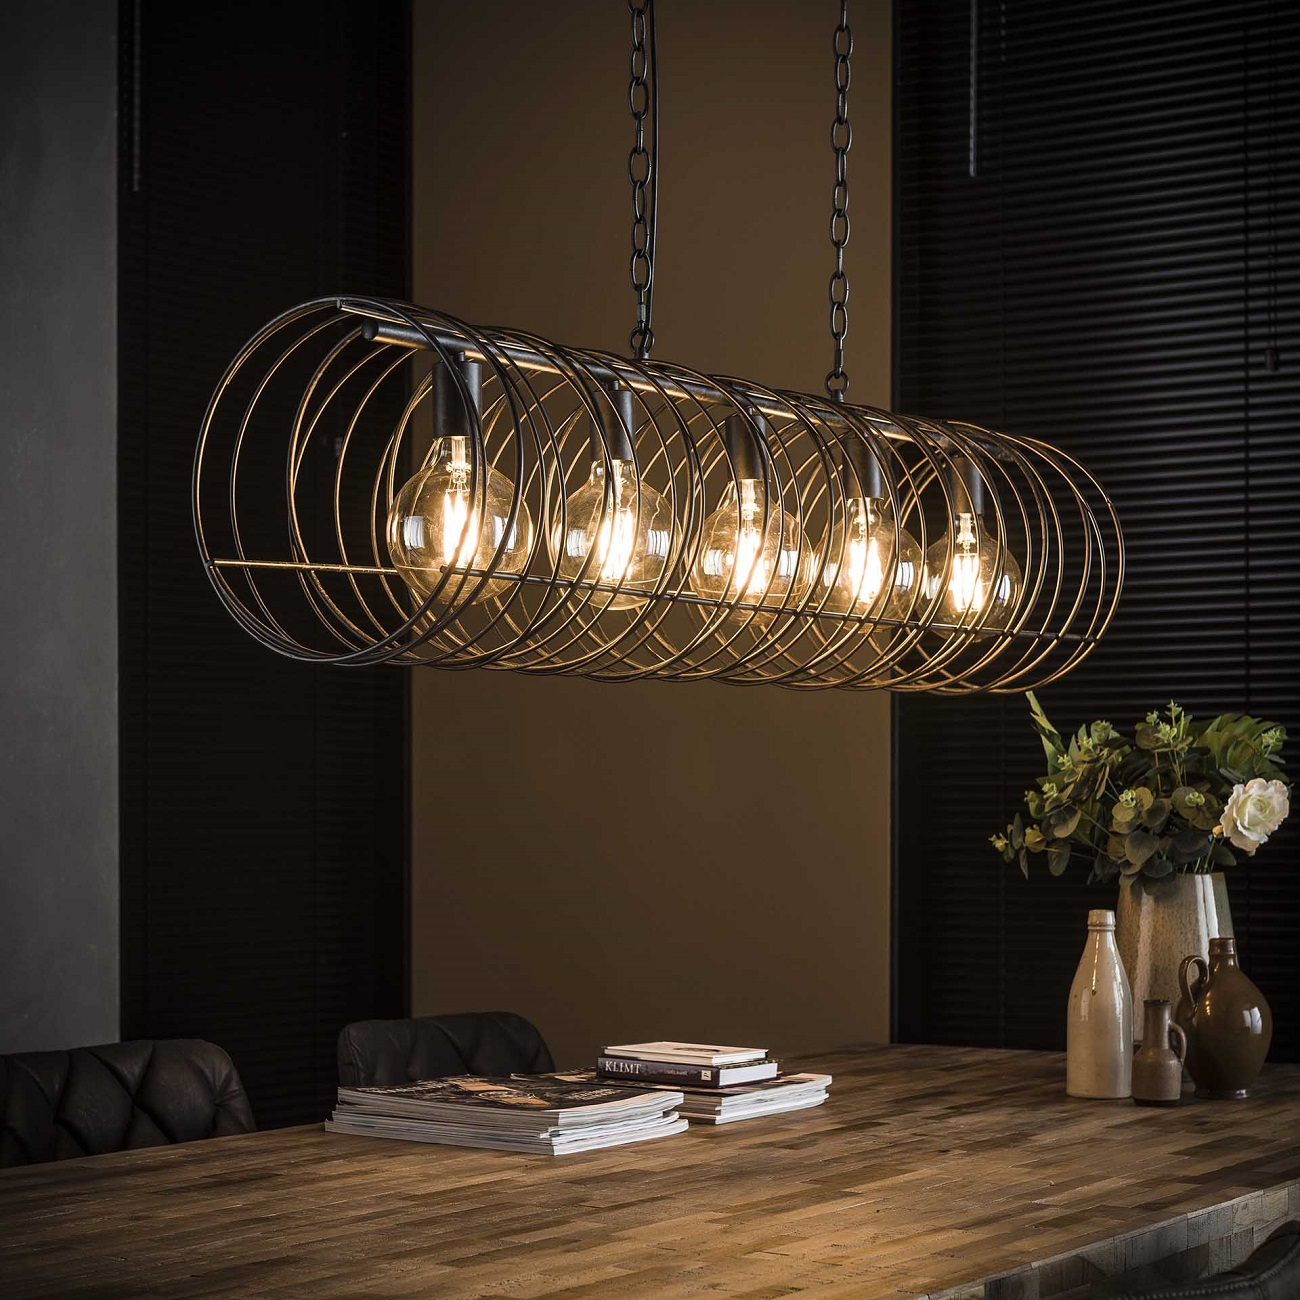 Hanglamp Willy Ø28 van 120 cm breed in charcoal | Zaloni